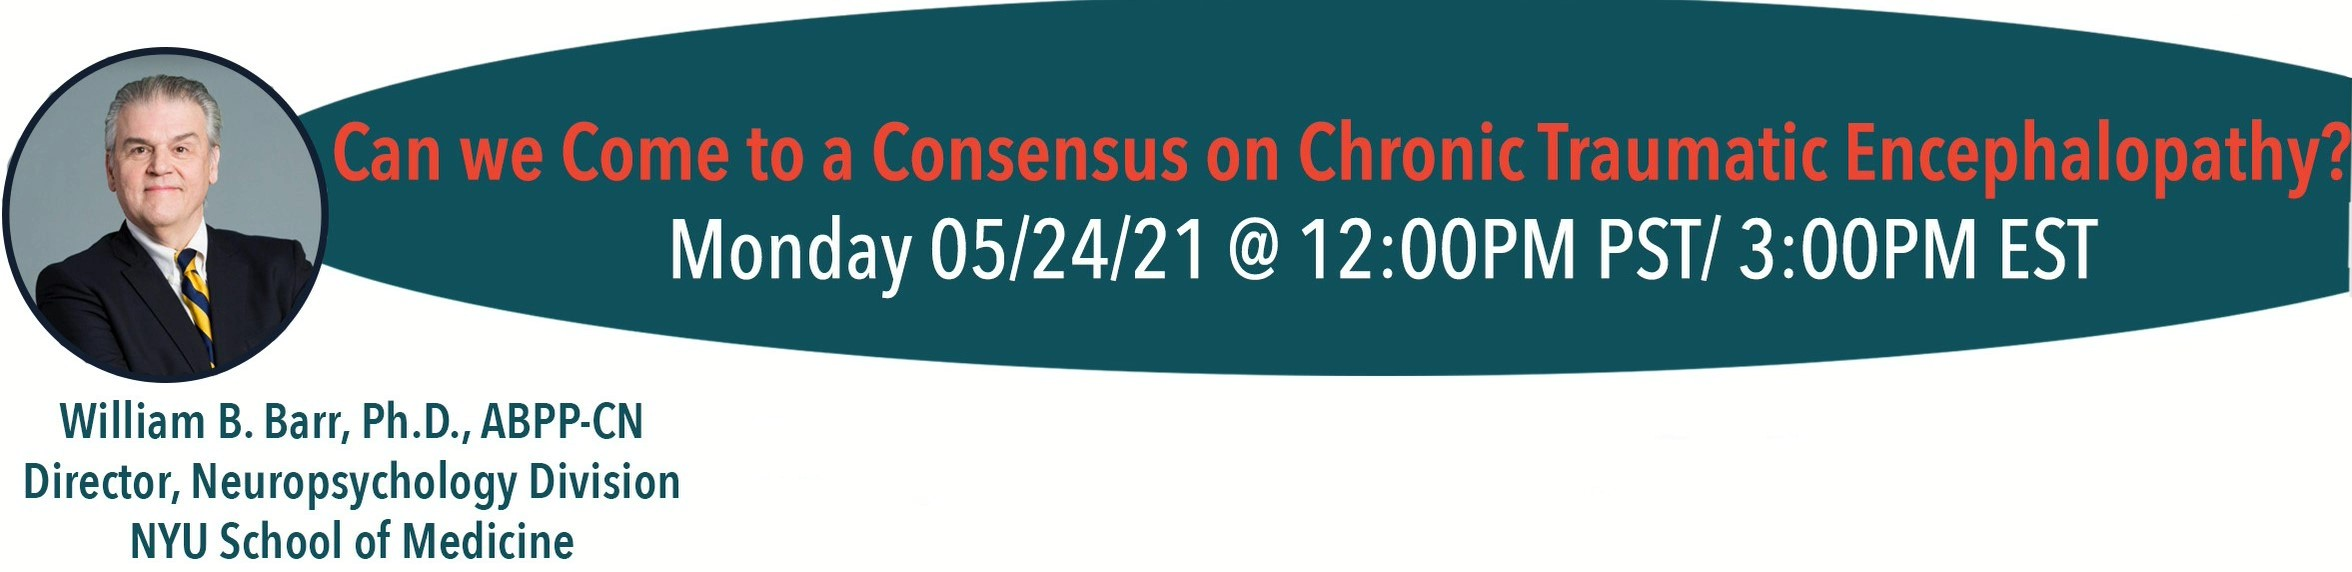 Can we come to a consensus on chronic traumatic encephalopathy? with Dr. William Barr